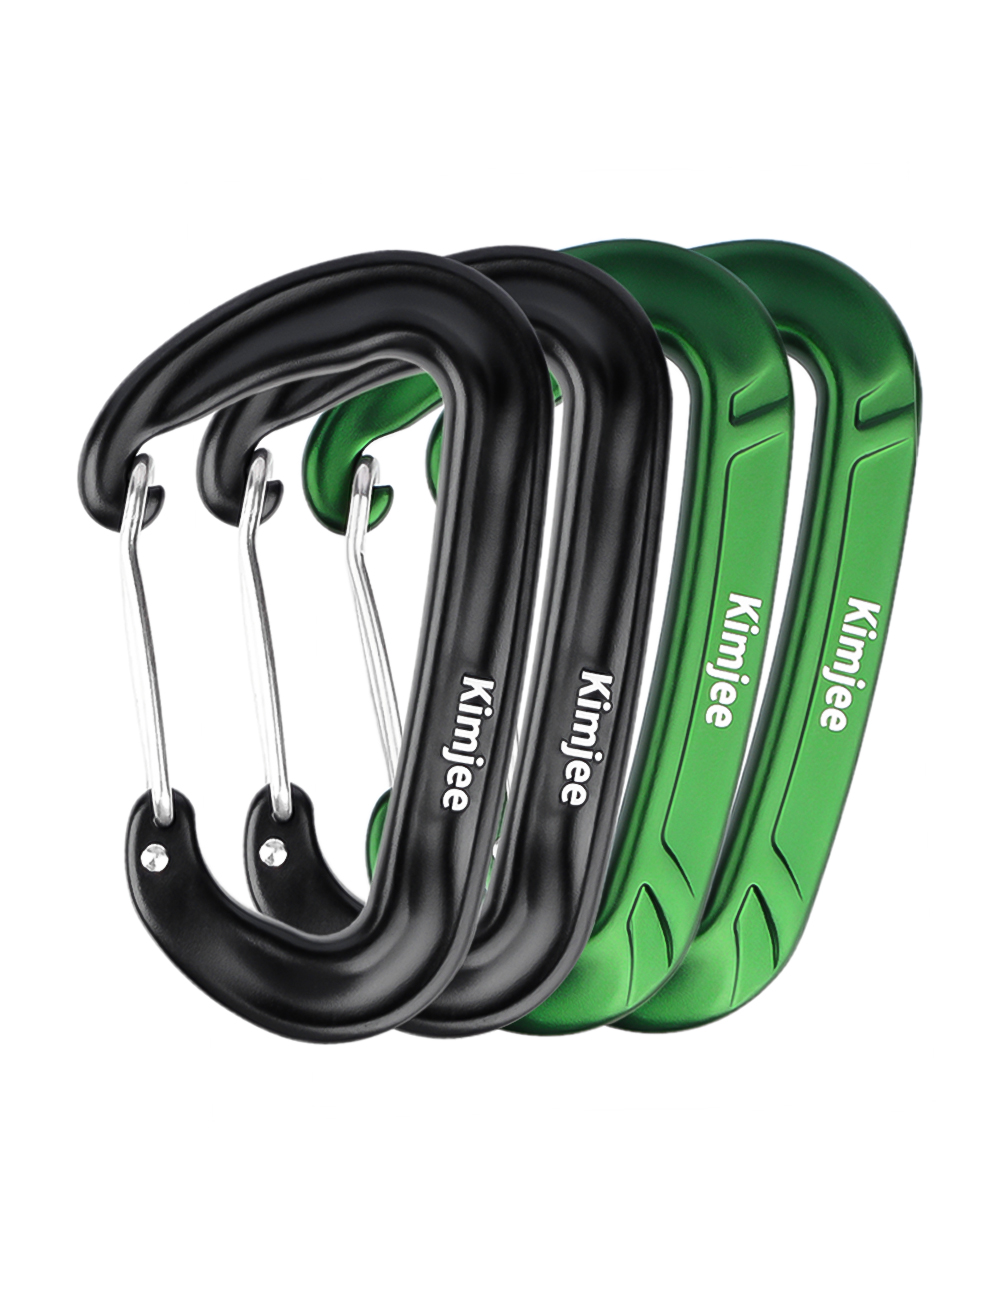 Why we should use the hammock carabiner?